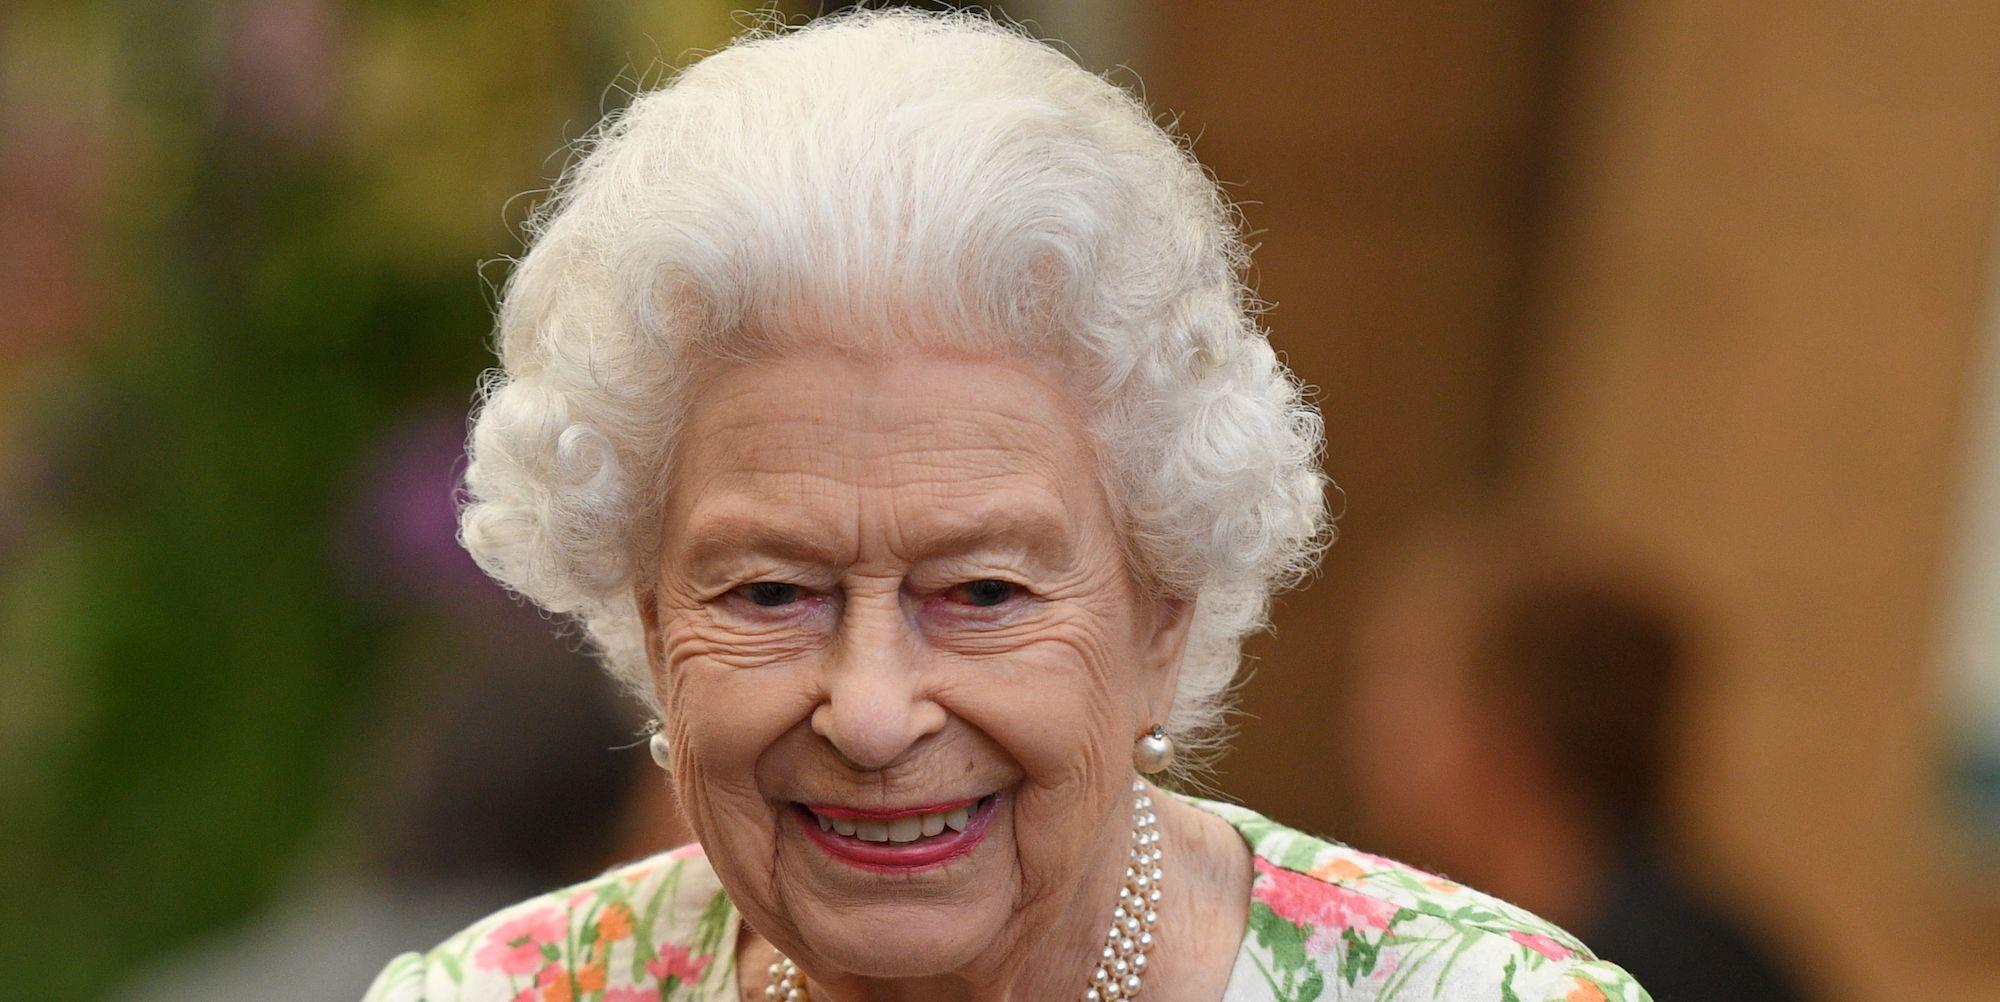 The Queen enjoyed a mini staycation over the weekend